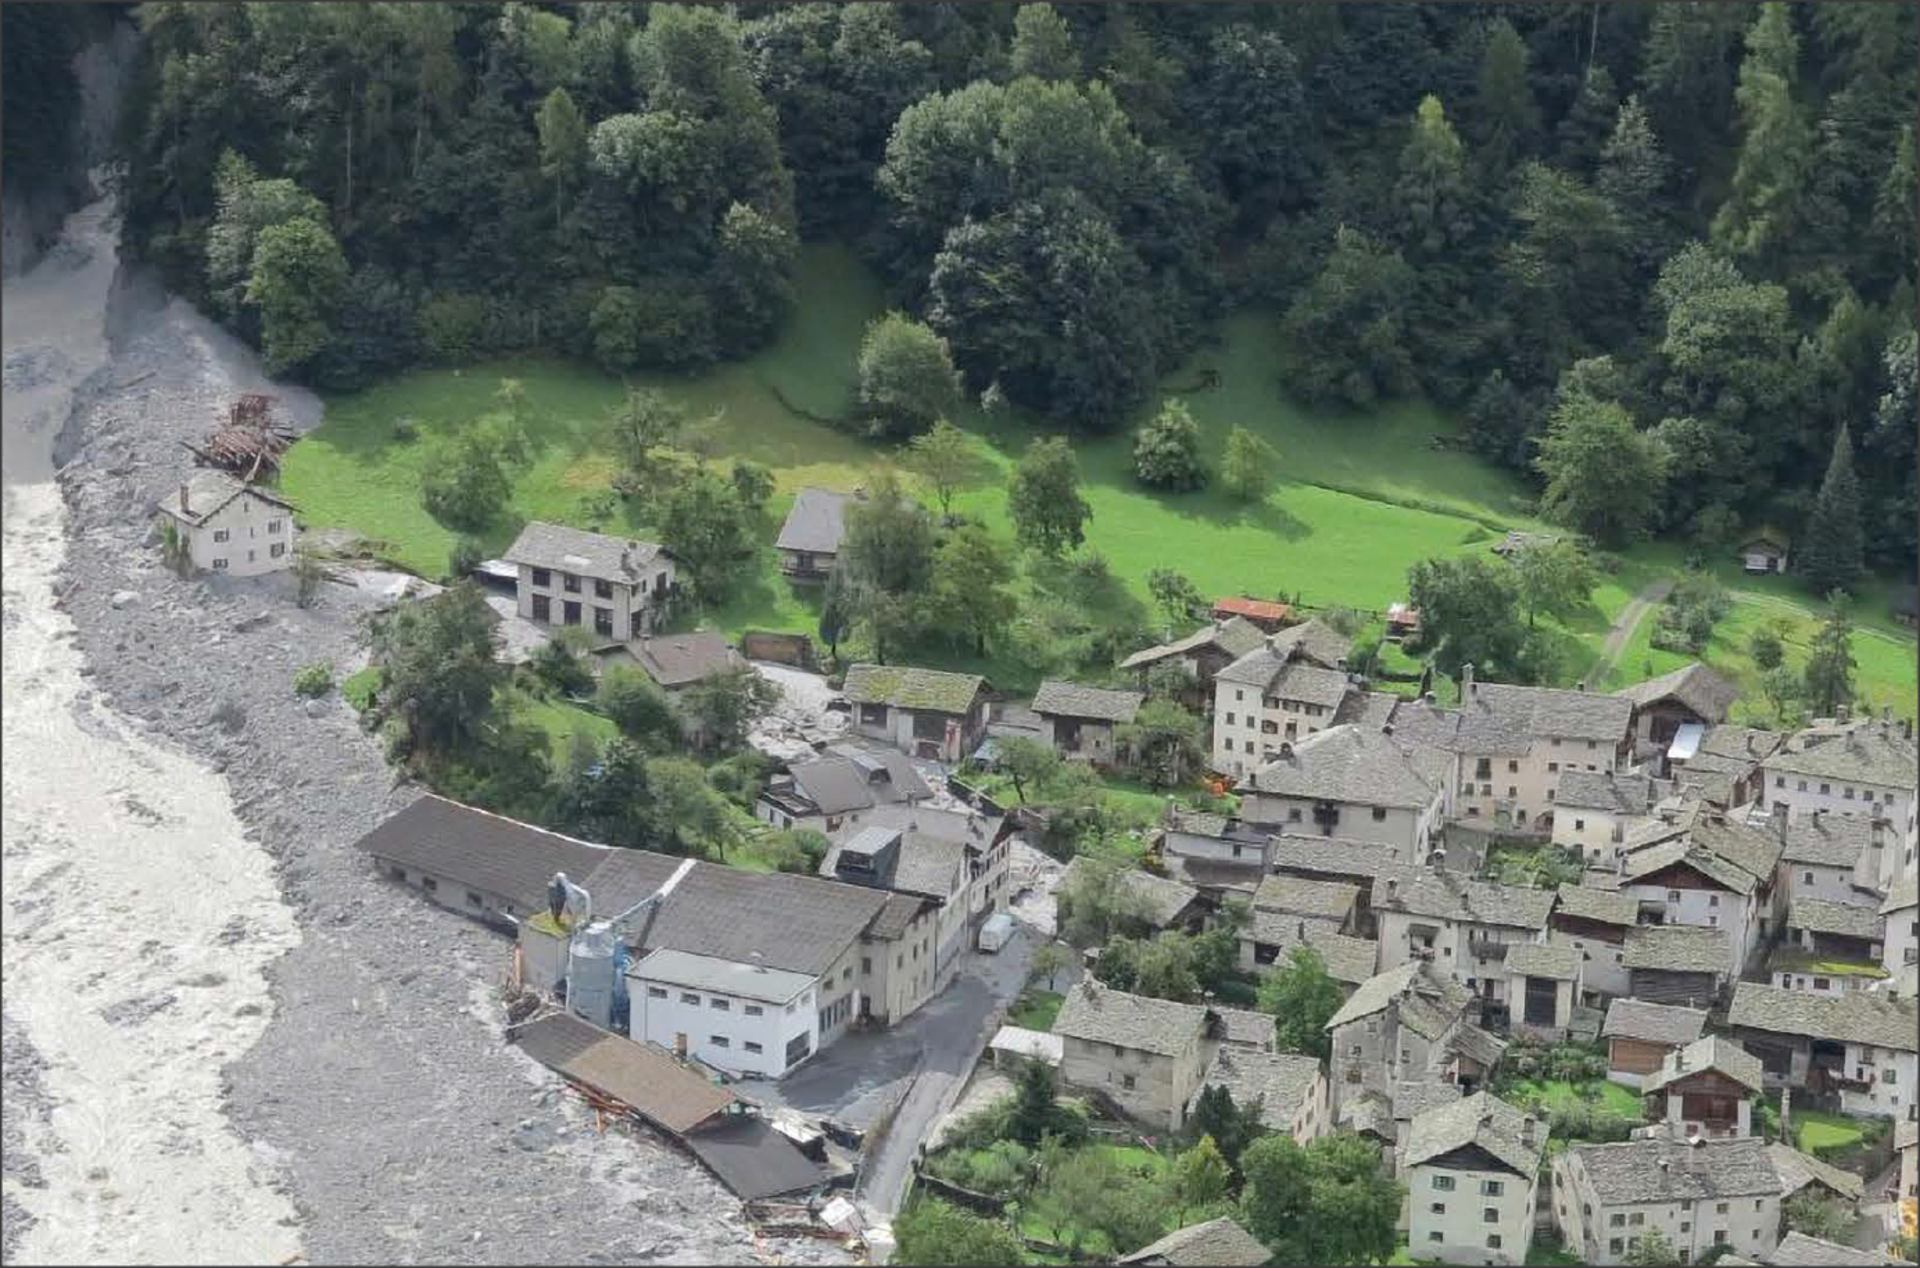 Bondo landslides, Switzerland